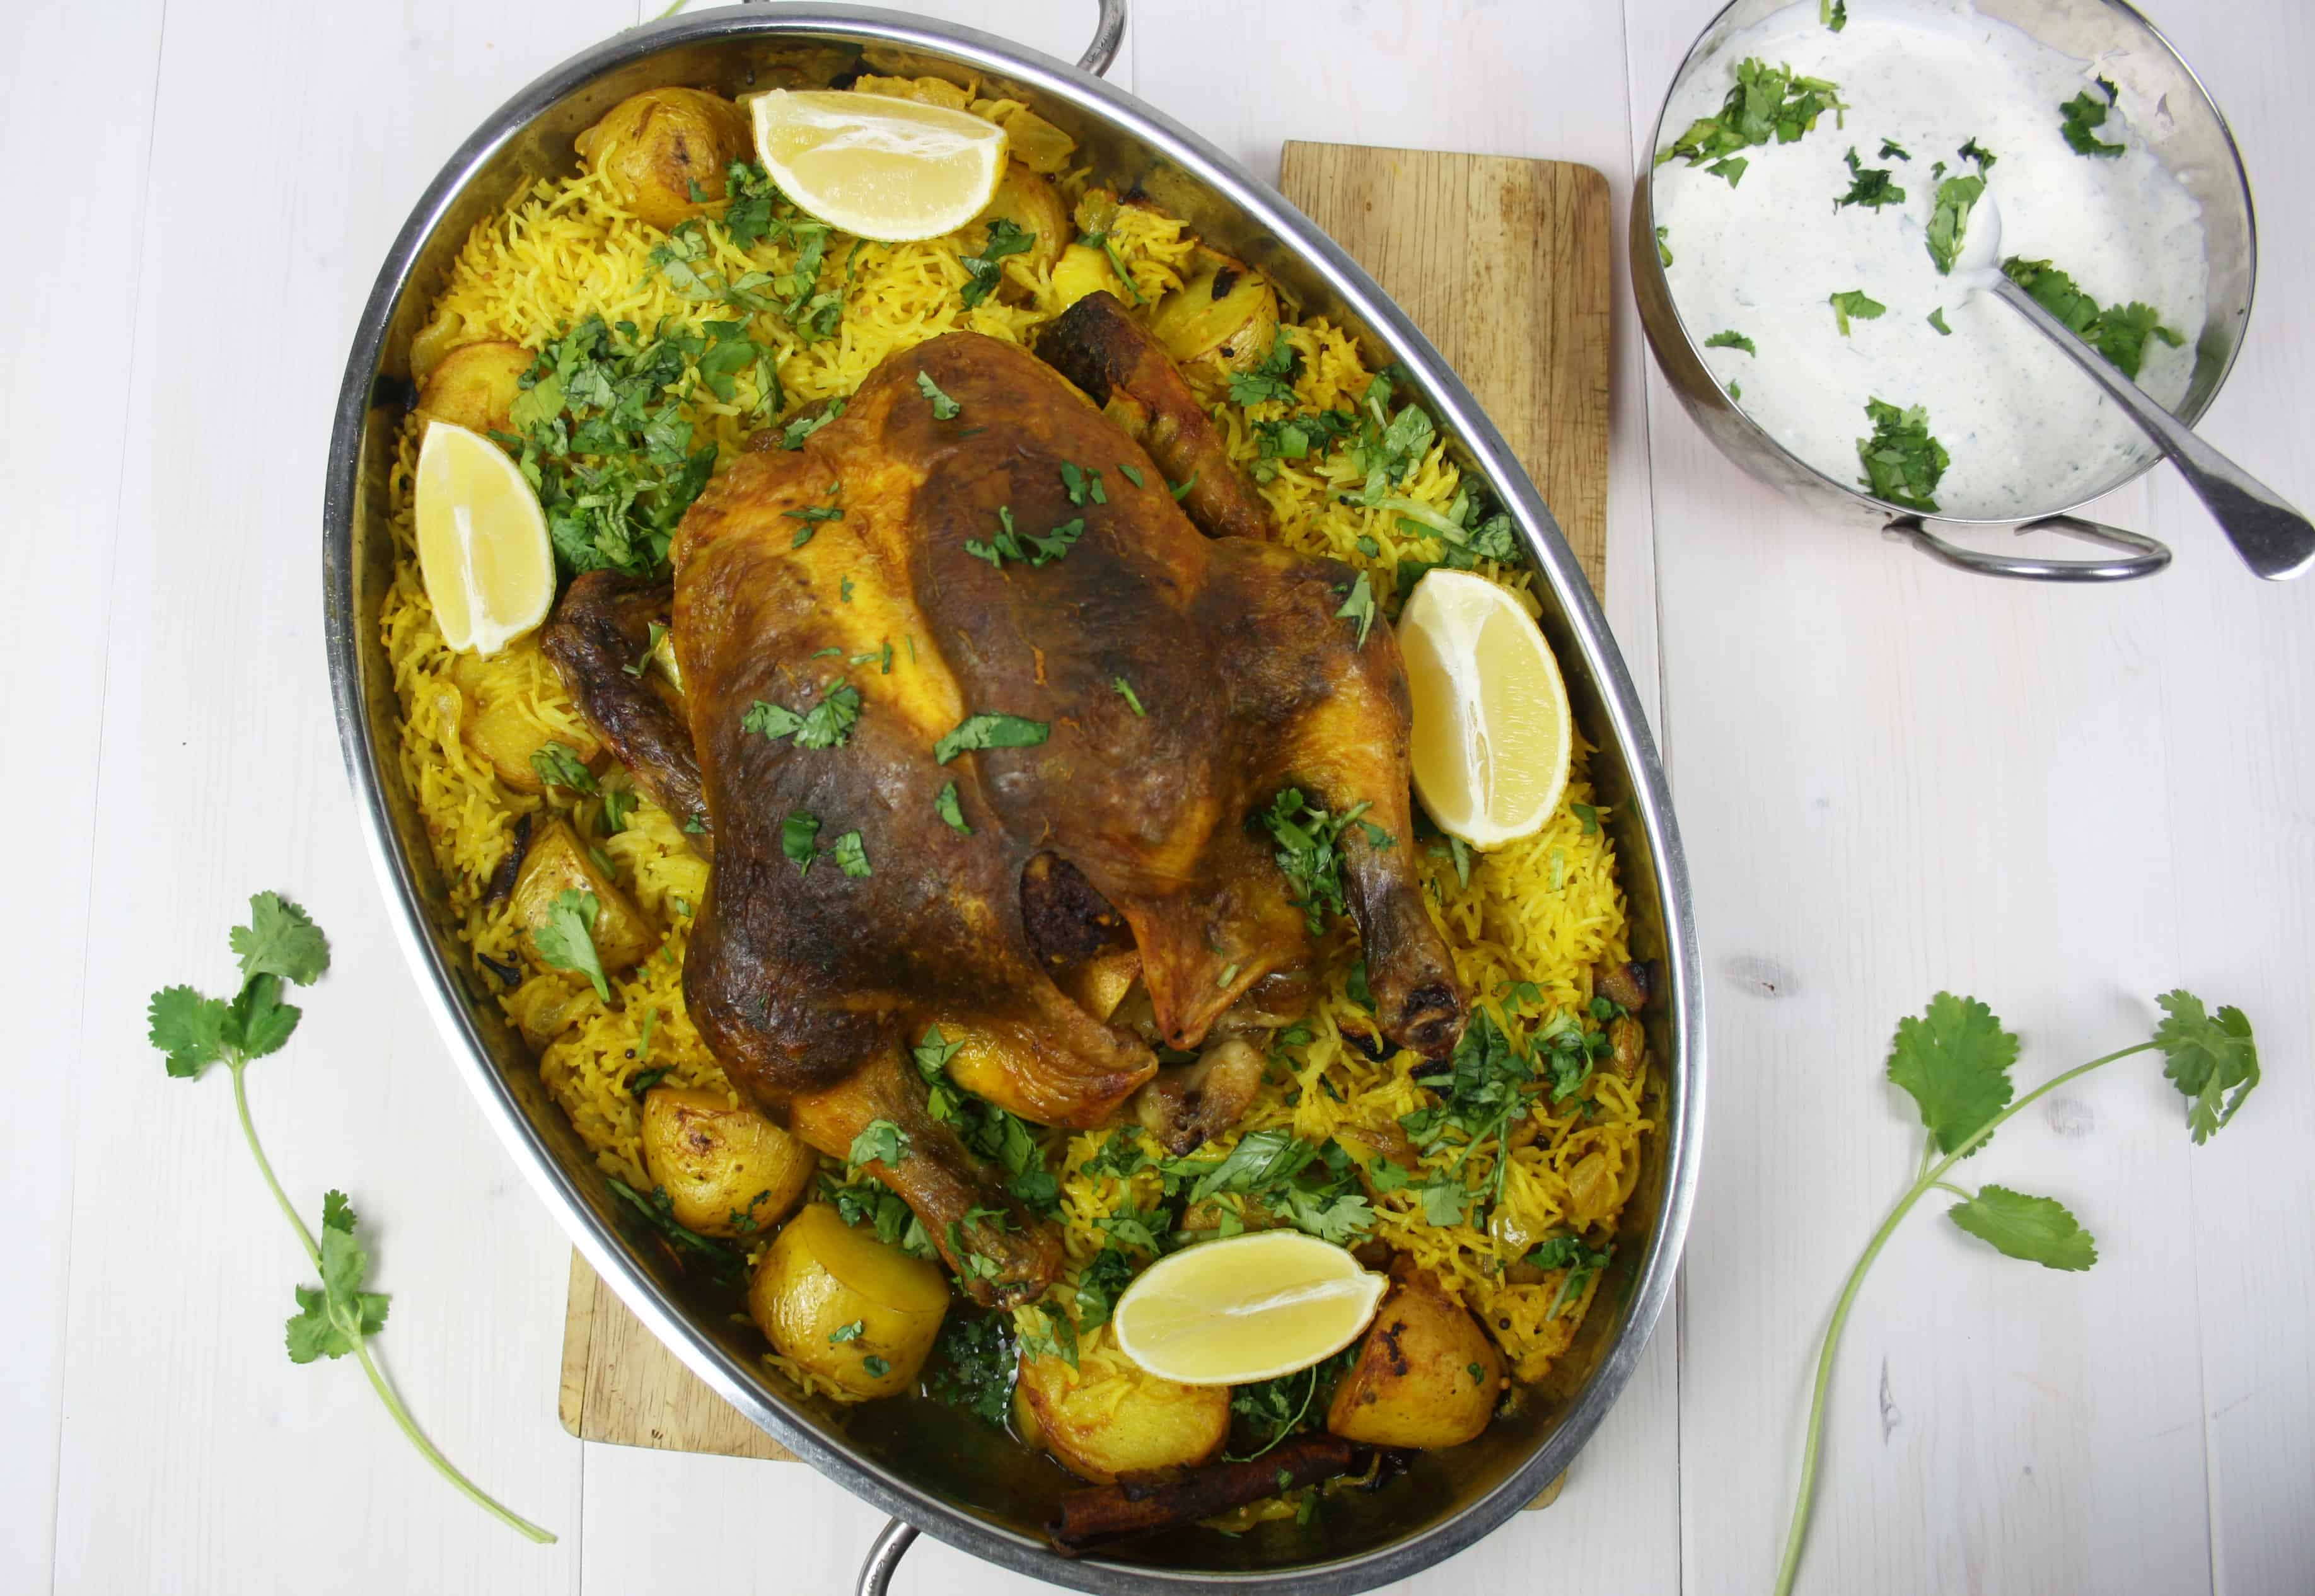 Asian Roast Chicken. This is a one pot dinner where a chicken is stuffed with spices and cooked with potatoes and rice and a bucketful of turmeric.